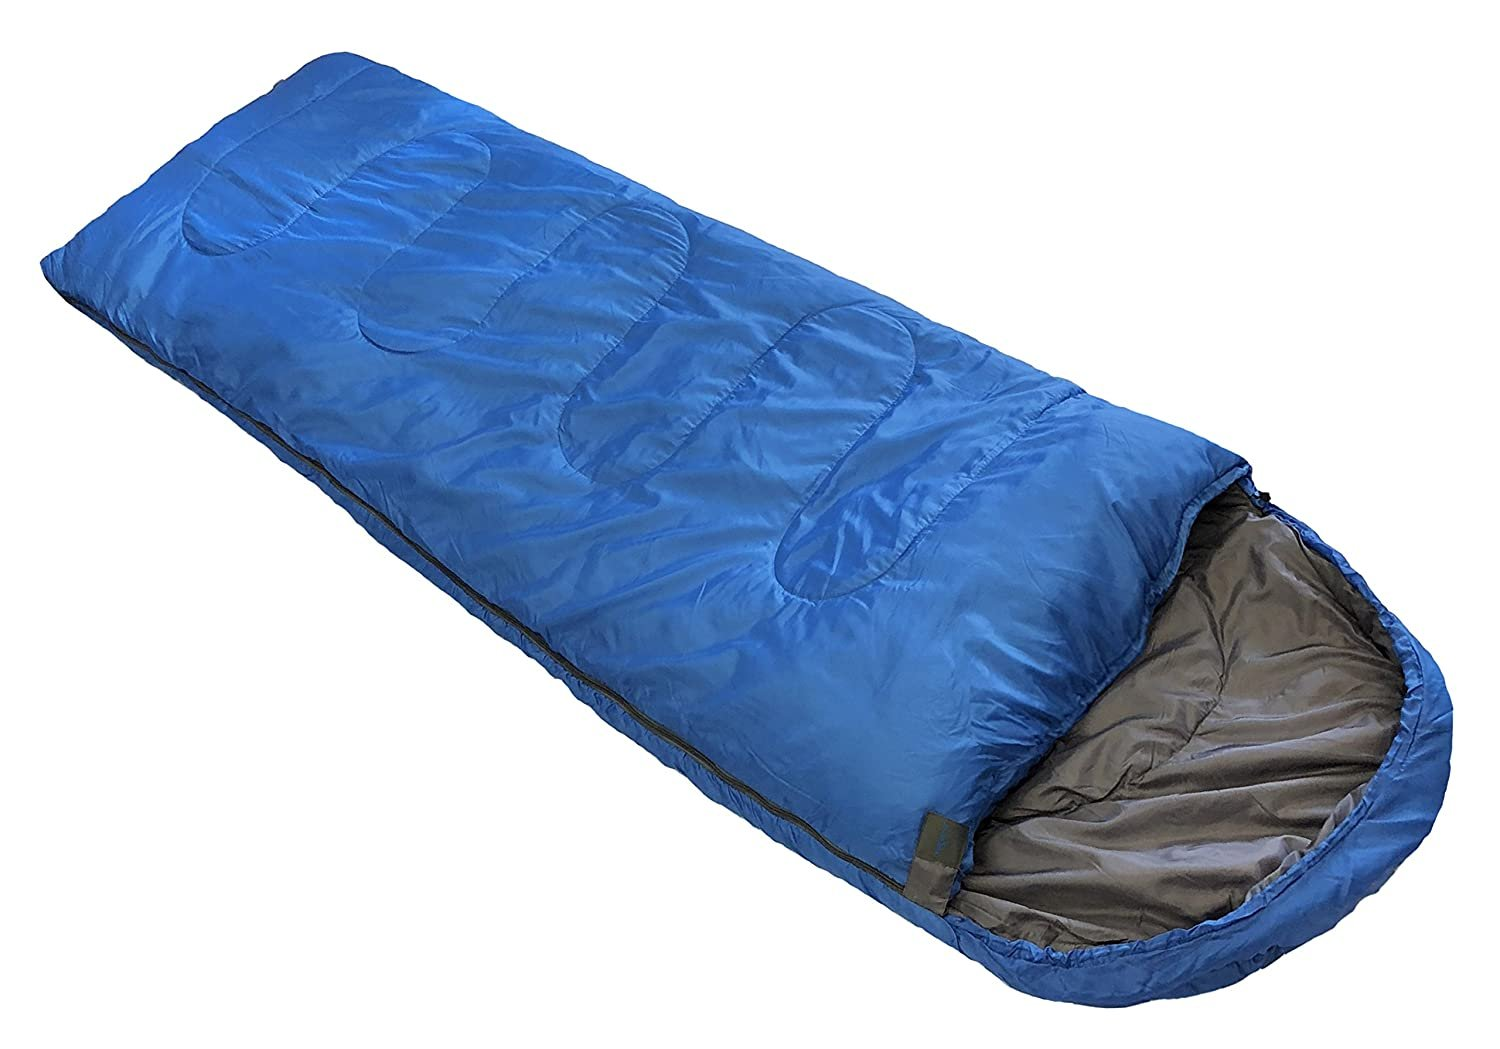 ADVENTURE RIDGE SLEEP BAG